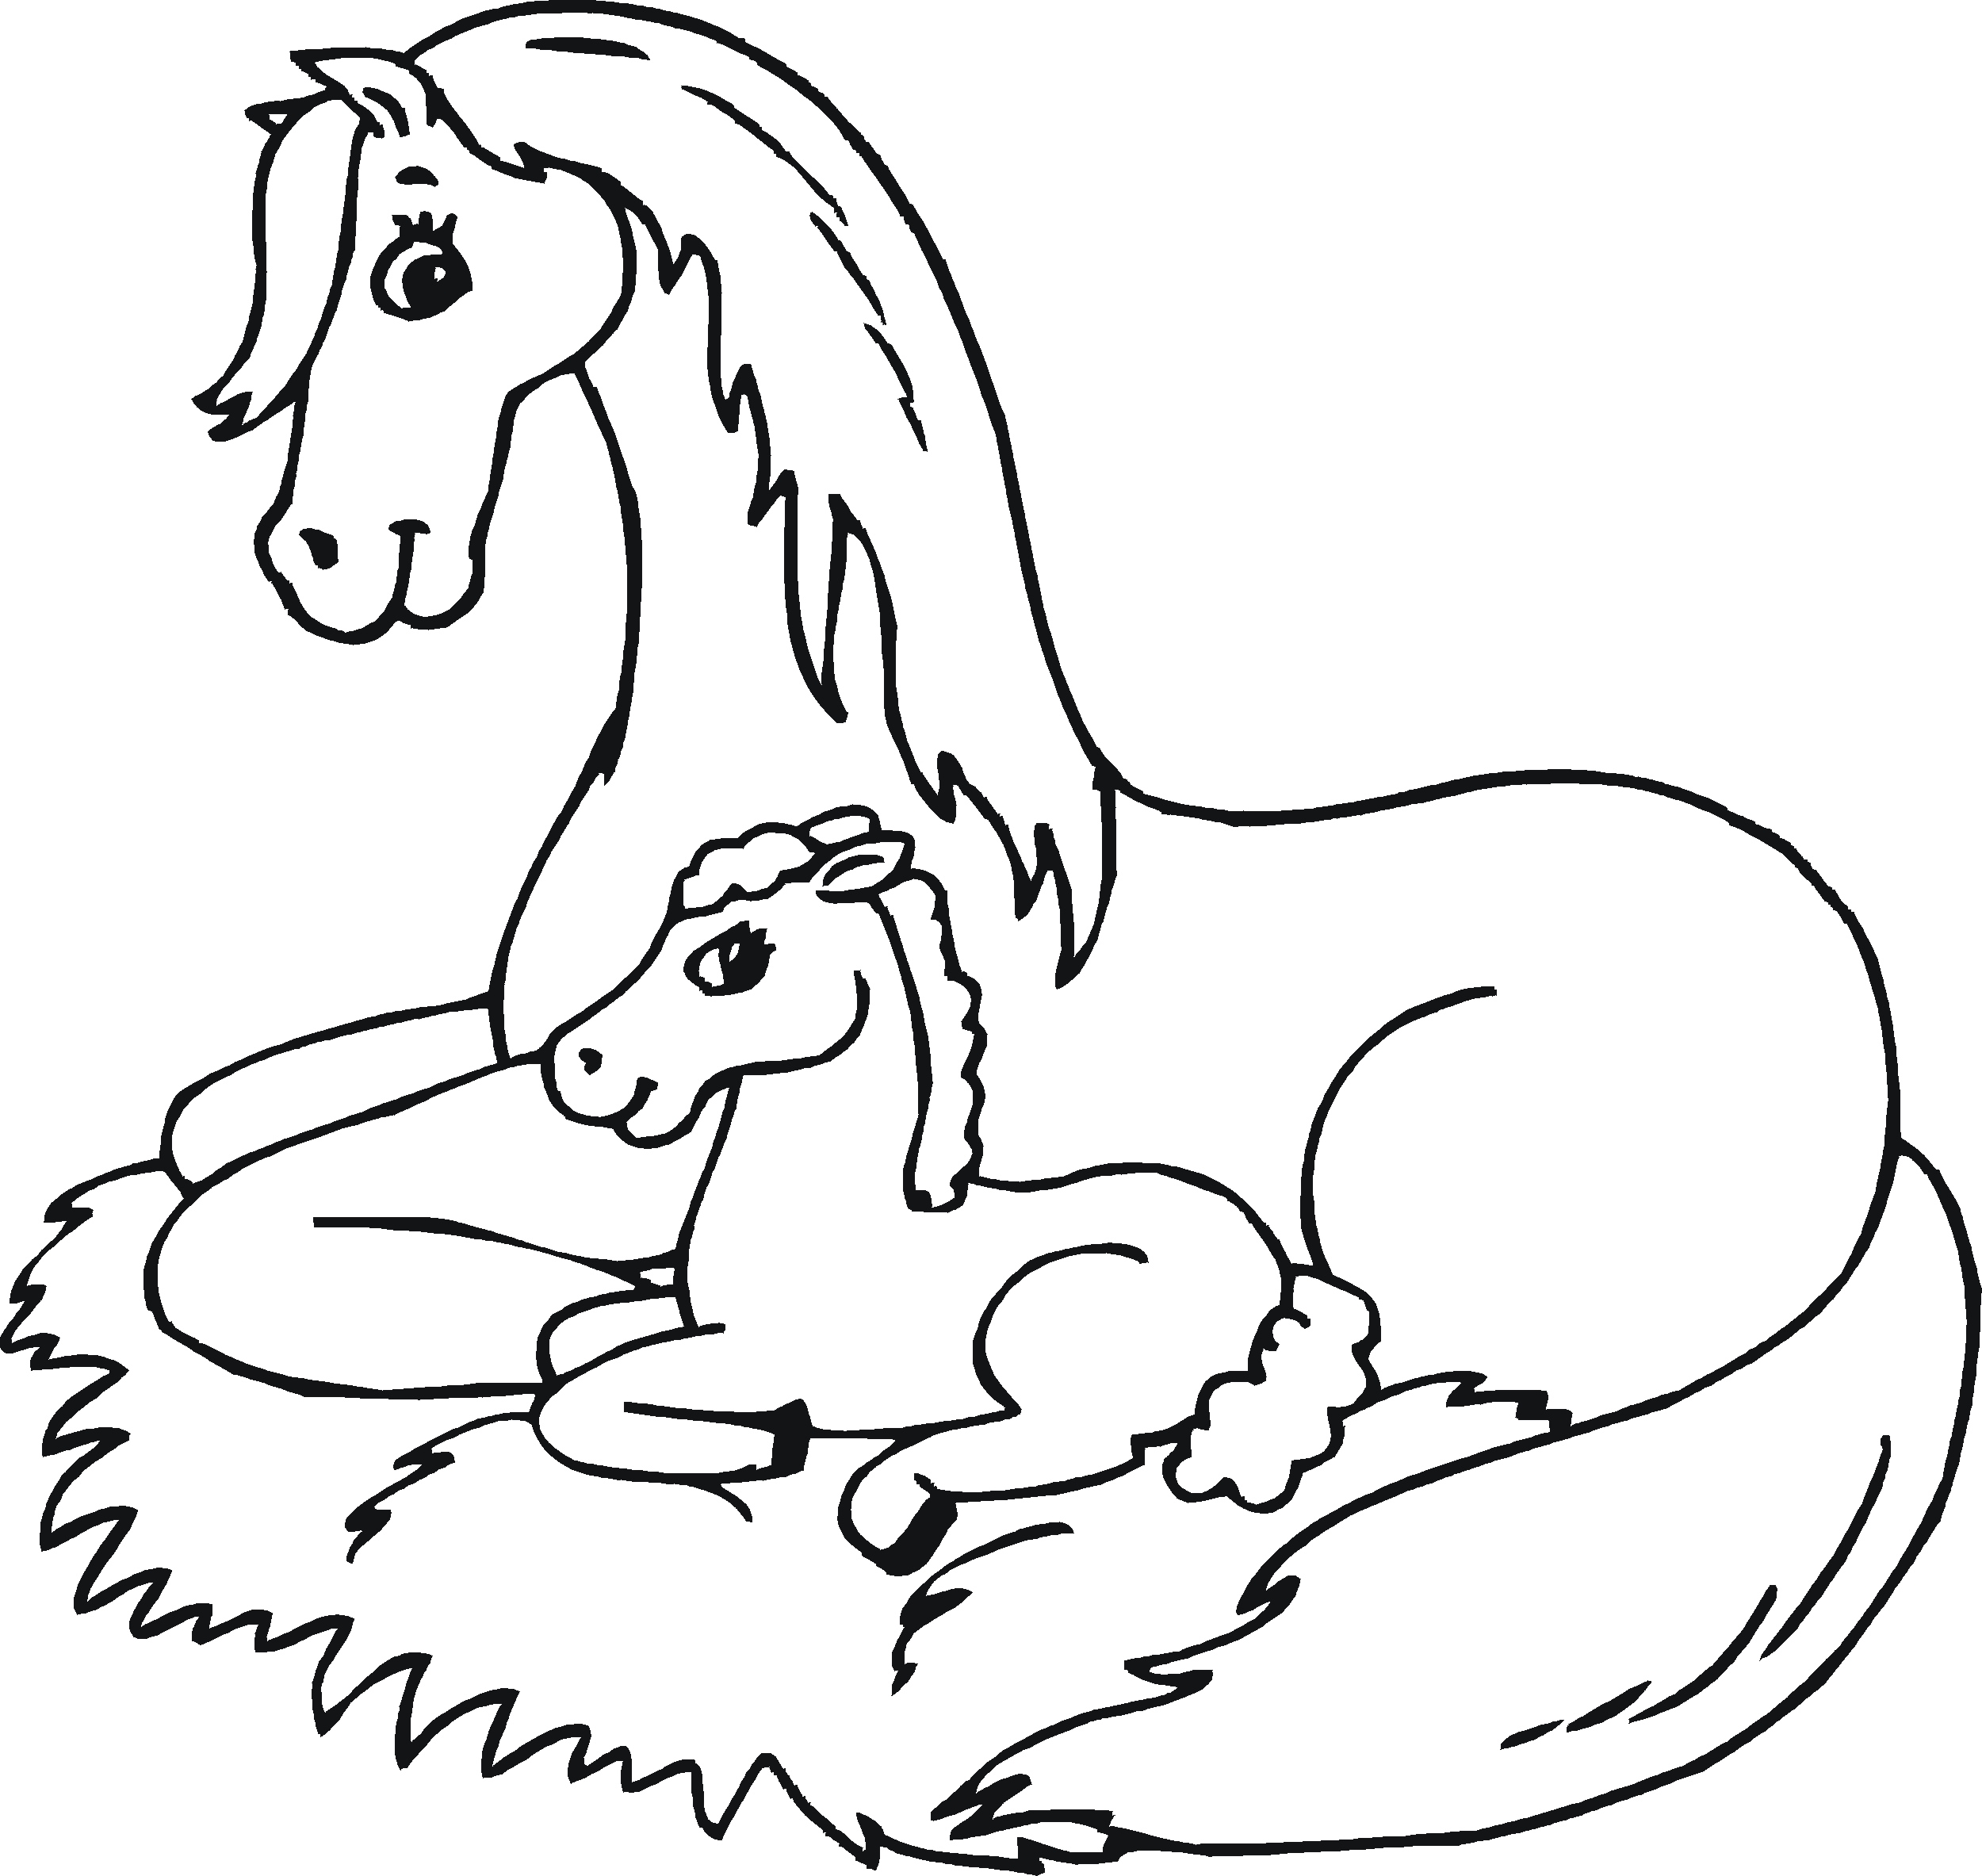 horse color sheet horse coloring pages for kids coloring pages for kids color sheet horse